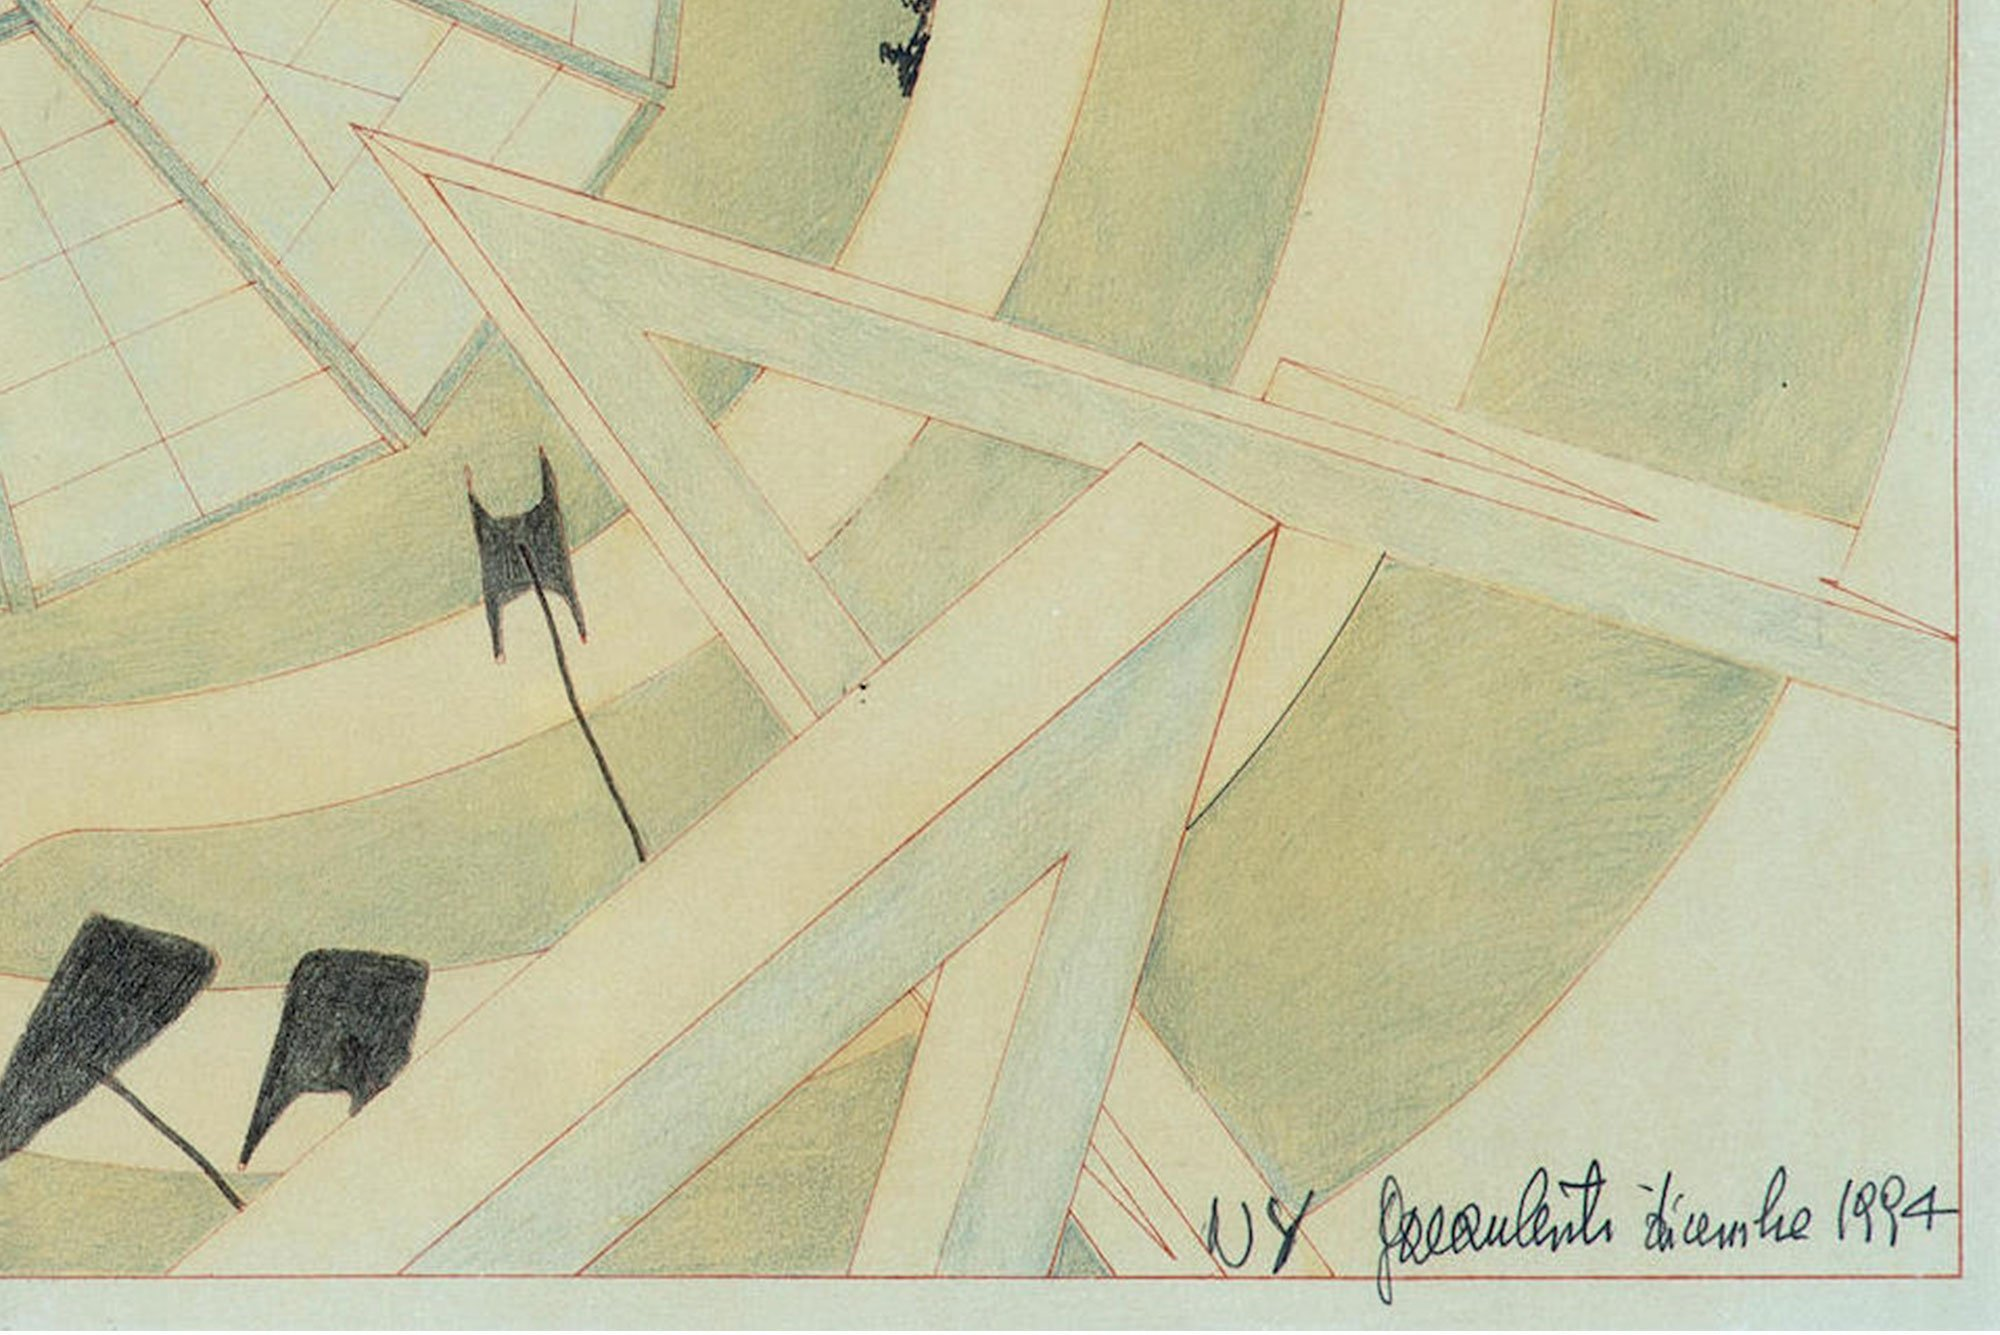 Pencil on paper, sketch of the atrium of The Guggenheim Museum during the seminal exhibition, The Italian Metamorphosis, 1943-1968. Made by Gae Aulenti. Closeup view of the signature in the lower right corner.